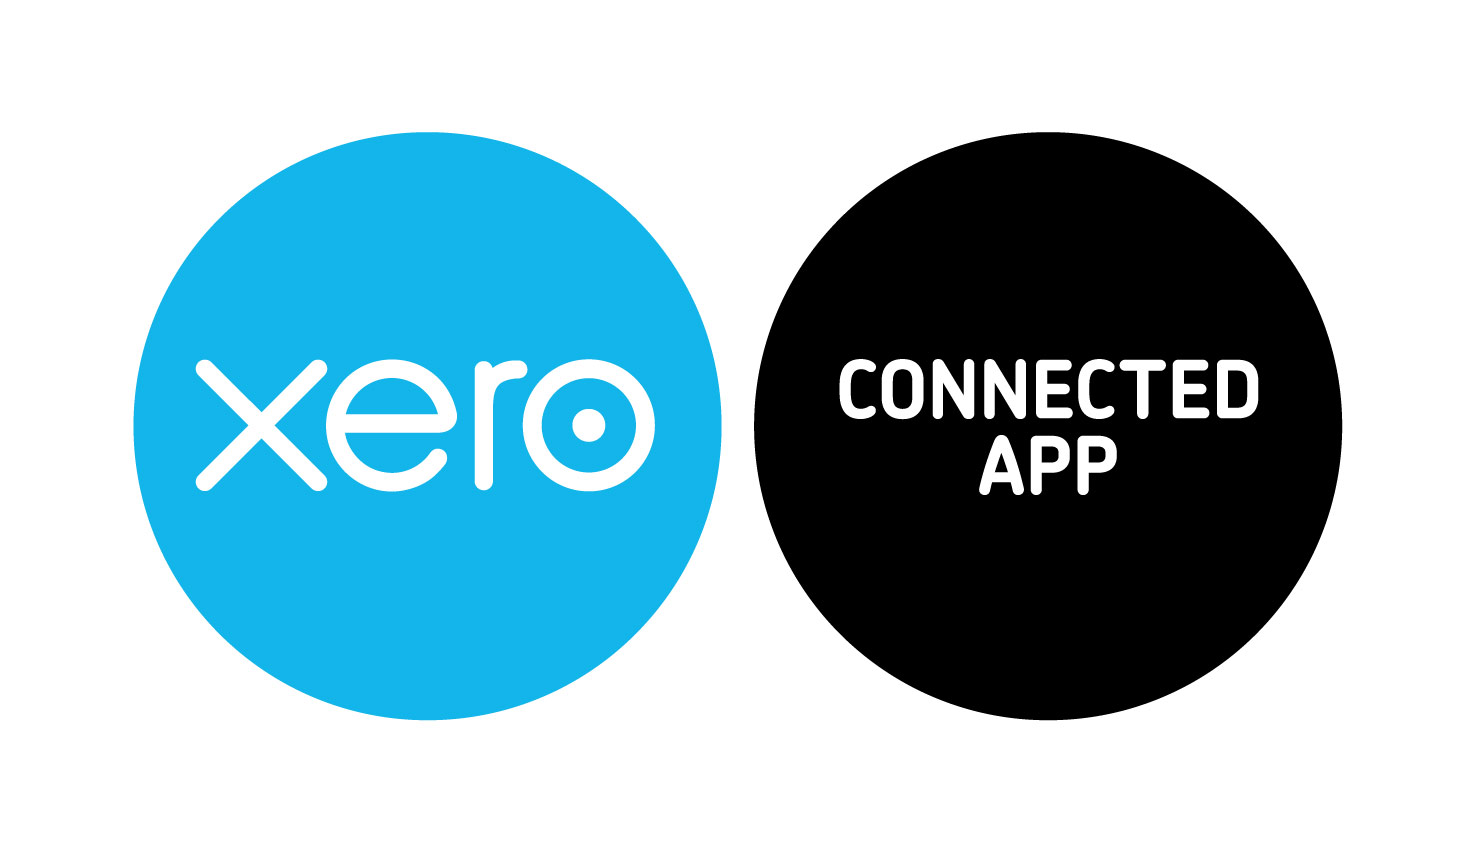 xero connected